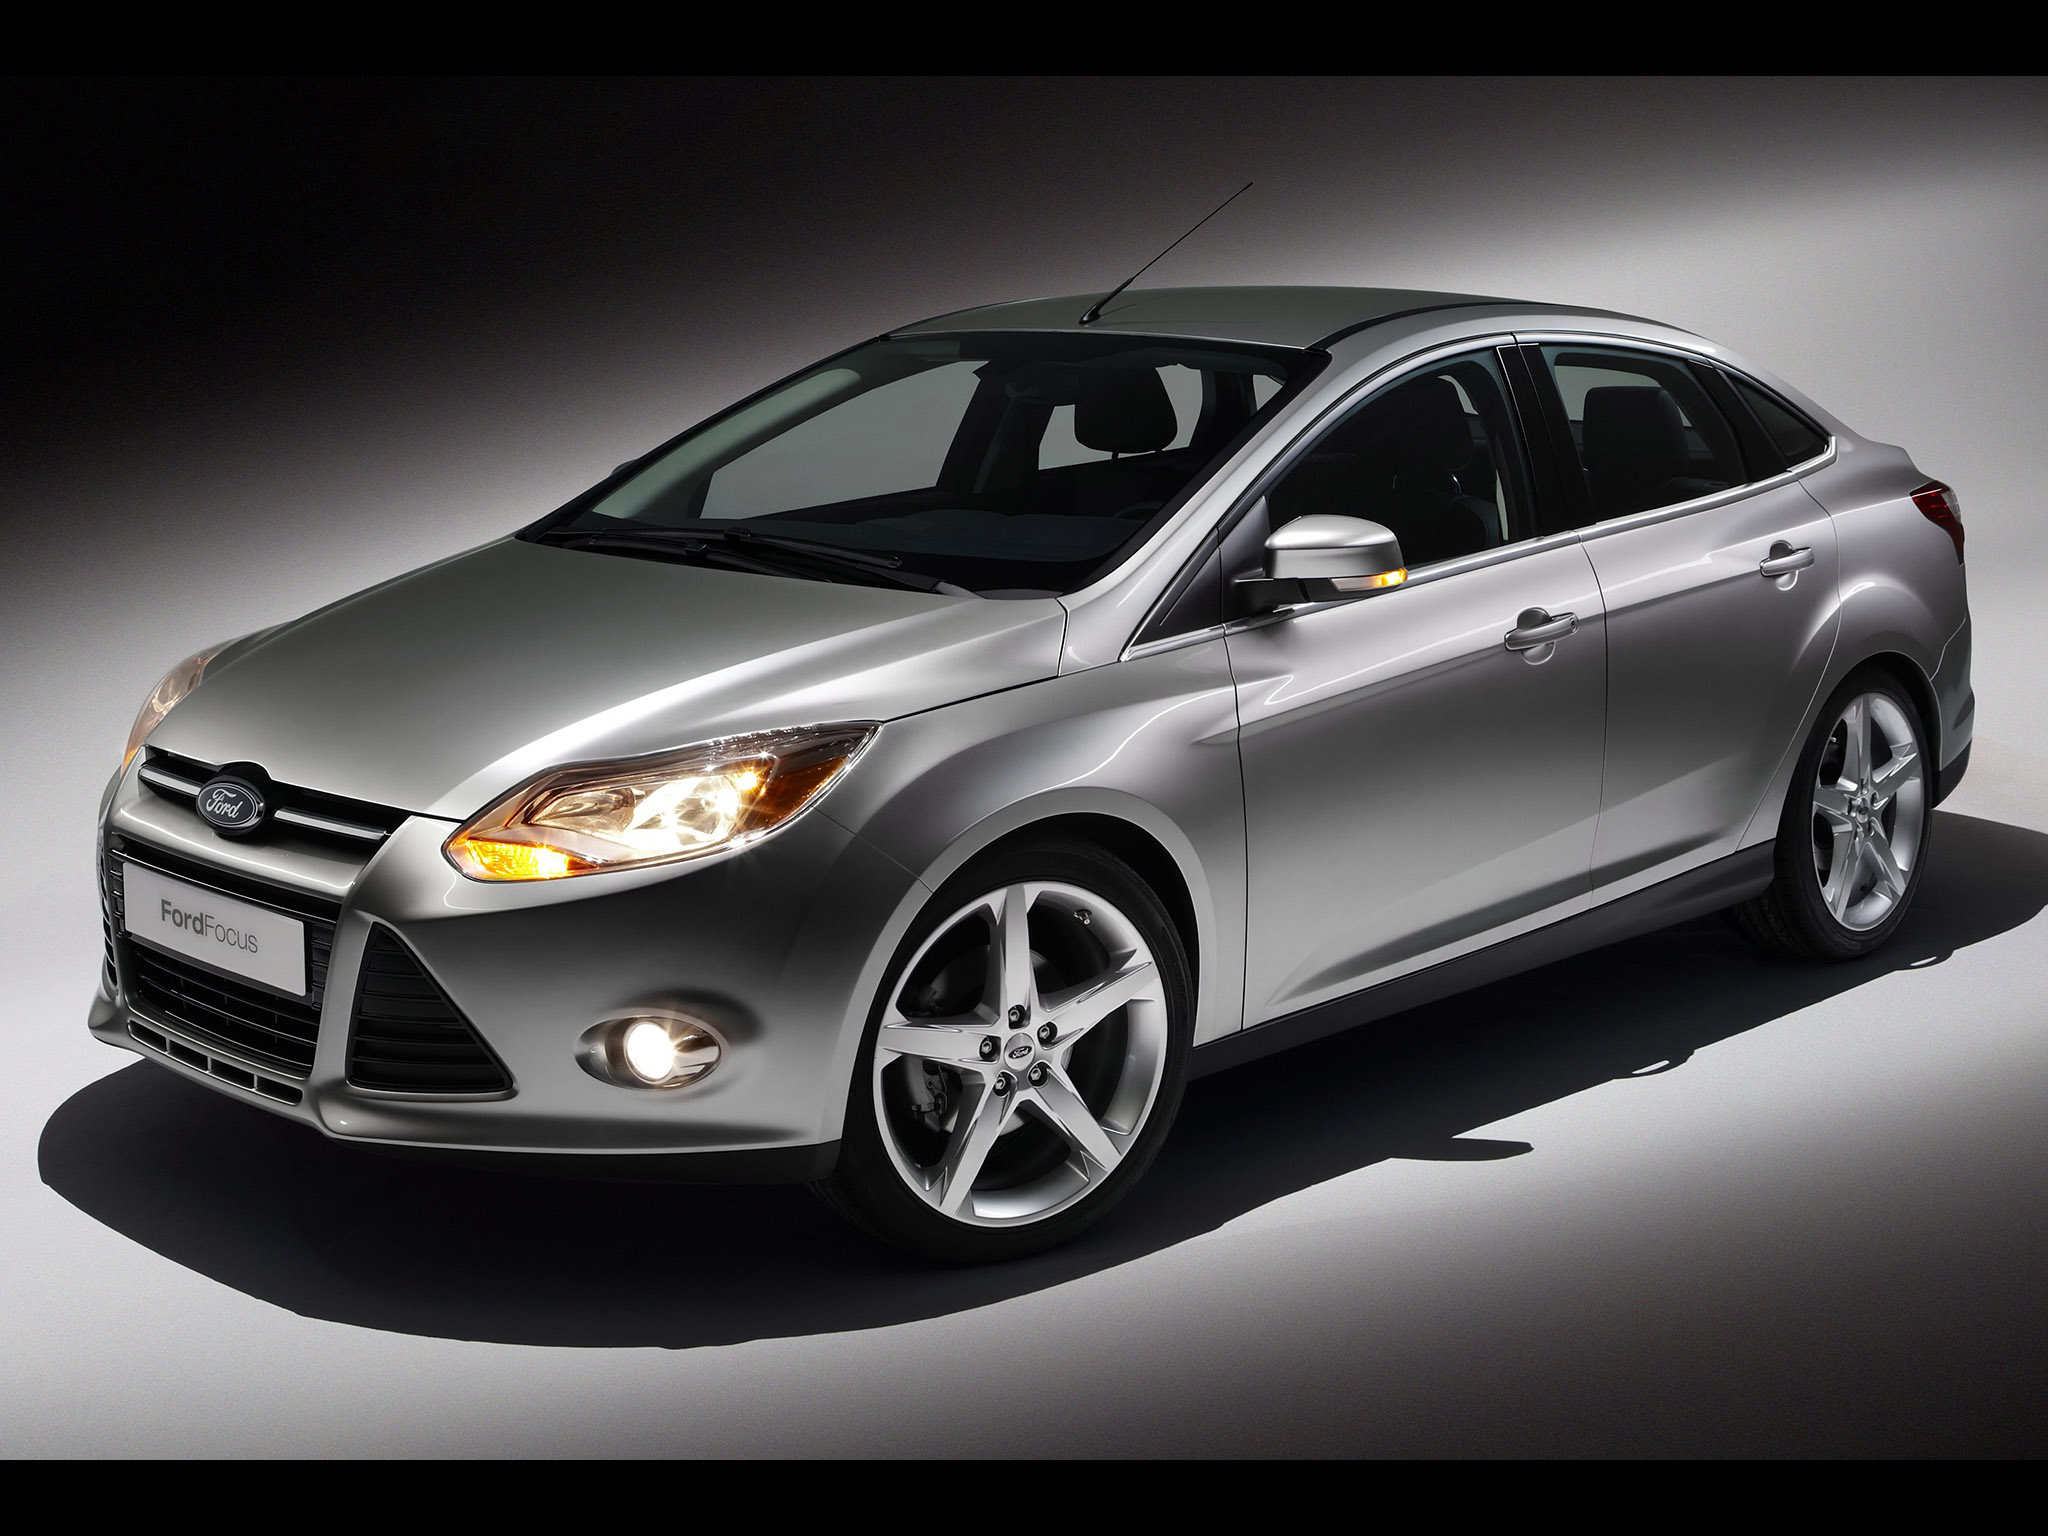 ford focus usa pics #11